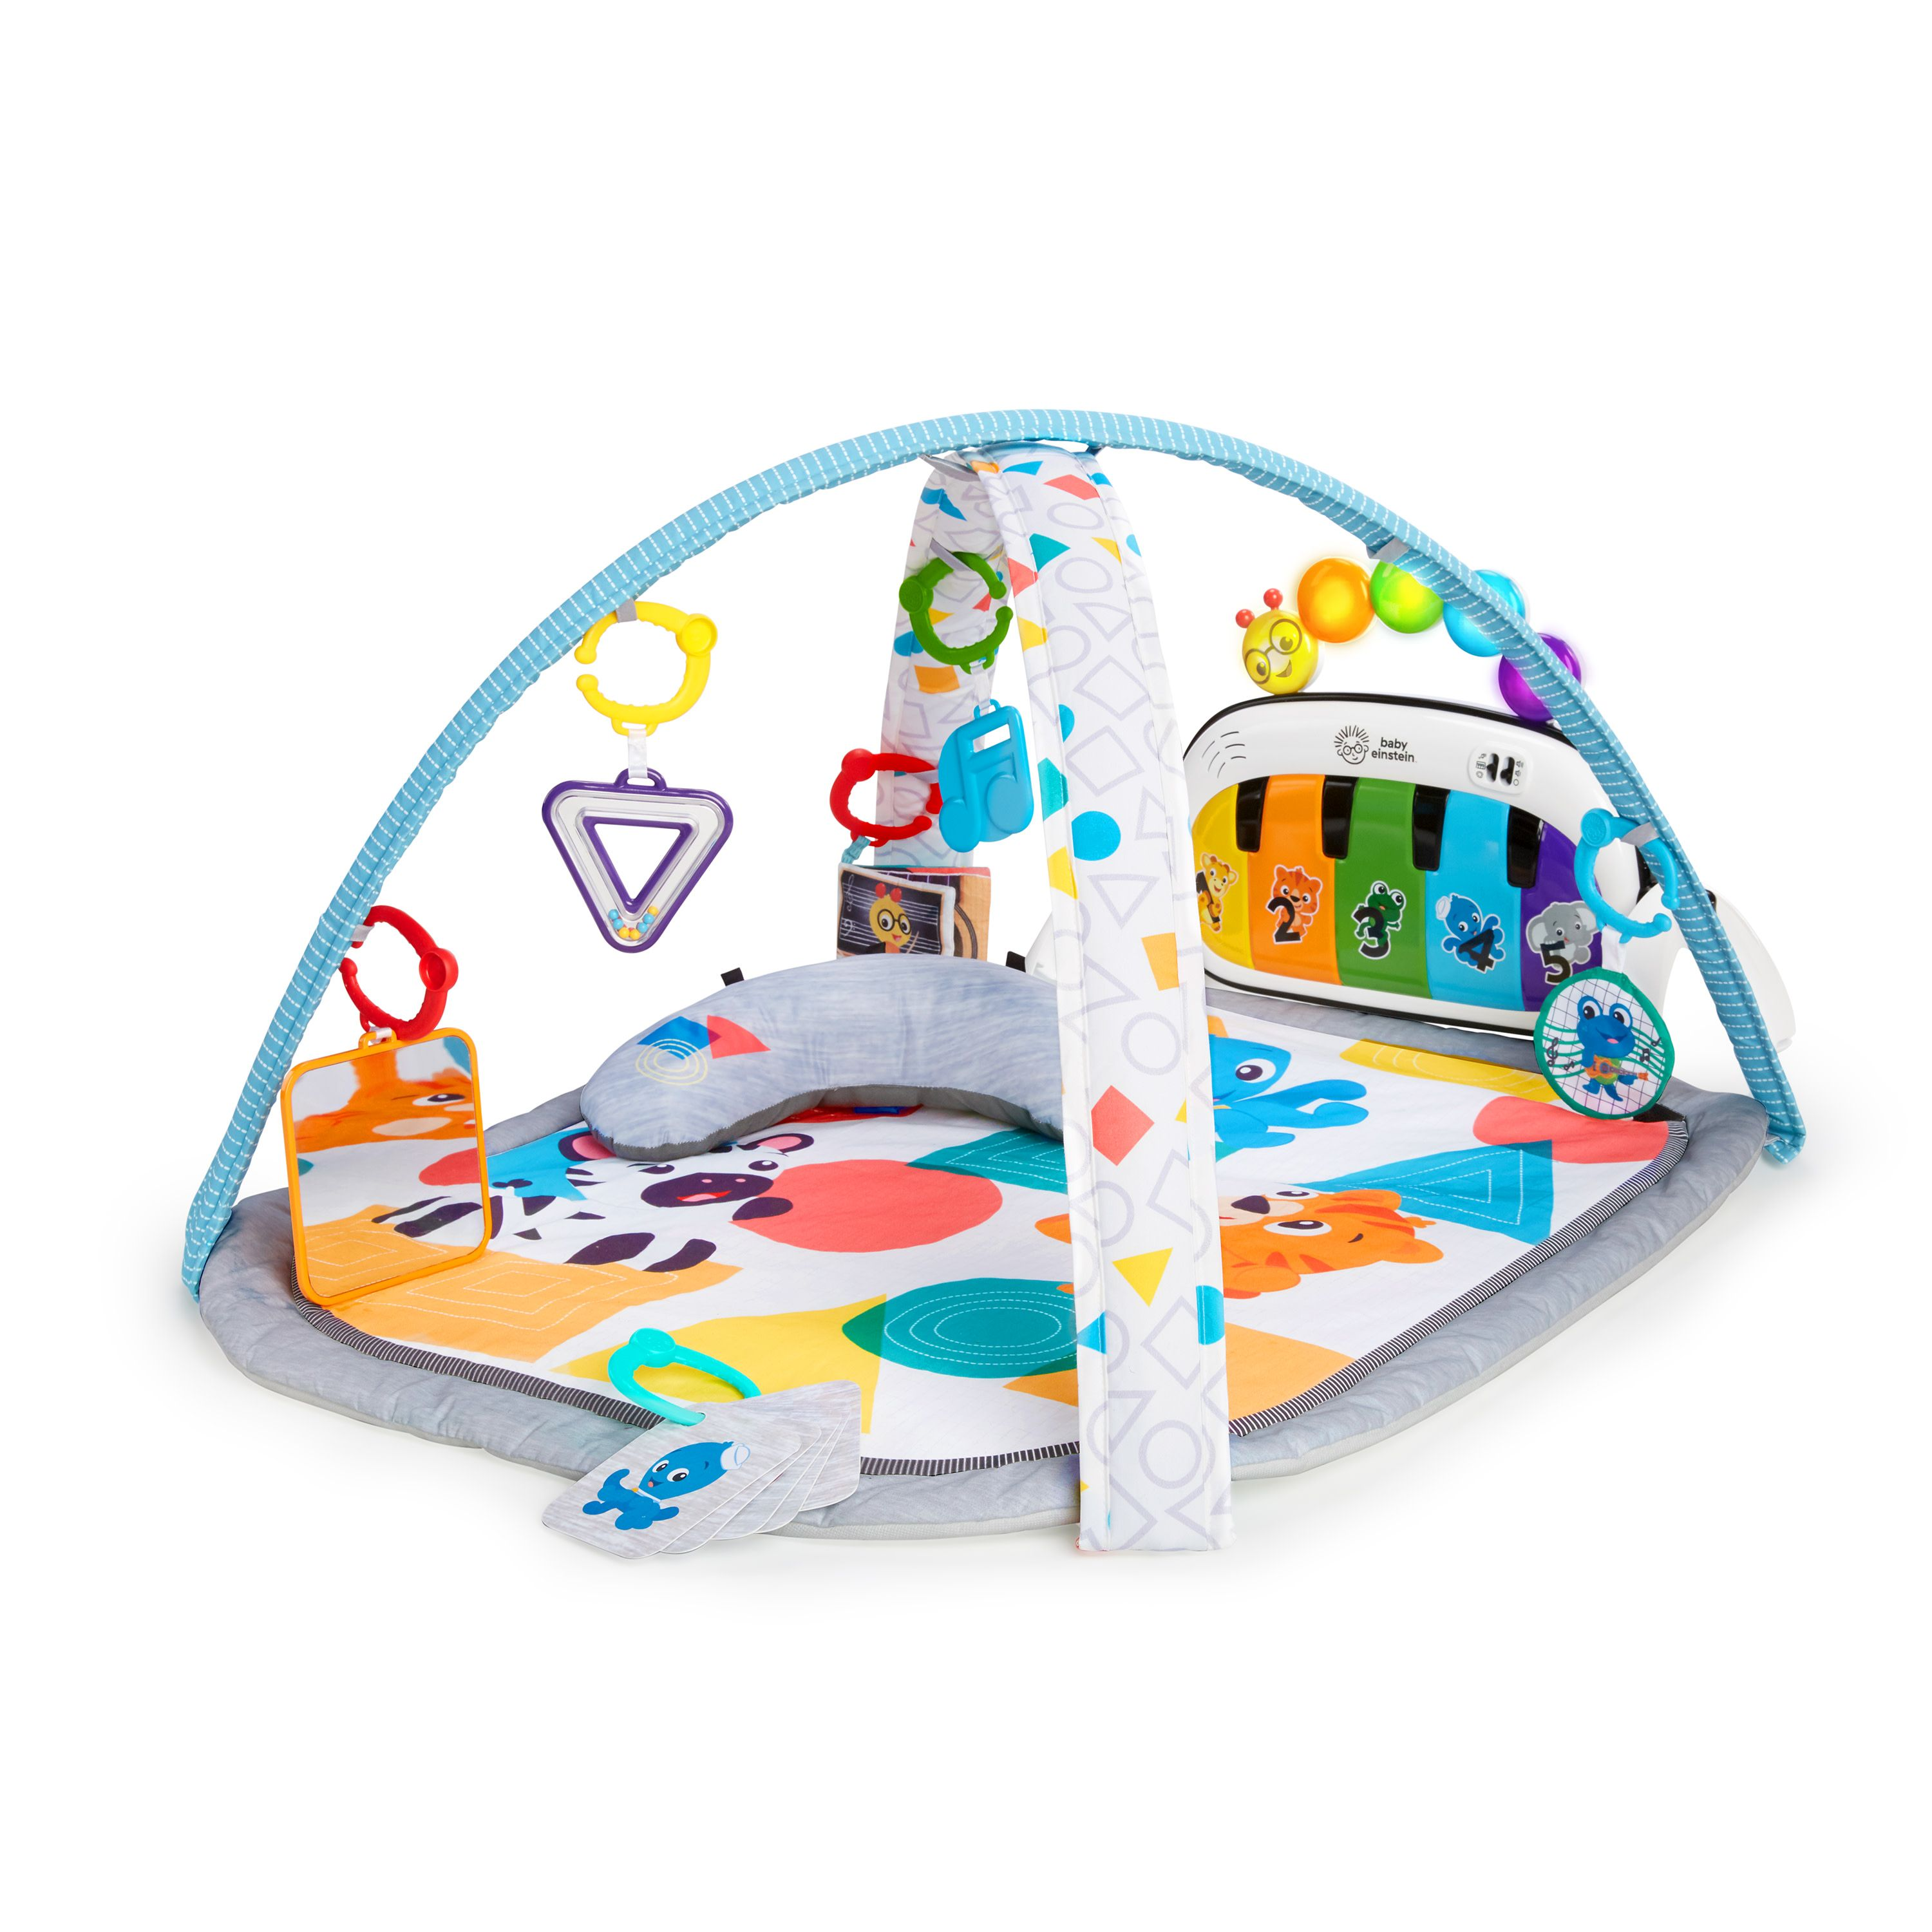 Baby Einstein 4 In 1 Kickin Tunes Music And Language Discovery Activity Gym And Play Mat Walmart Com In 2020 Baby Einstein Tune Music Baby Gym